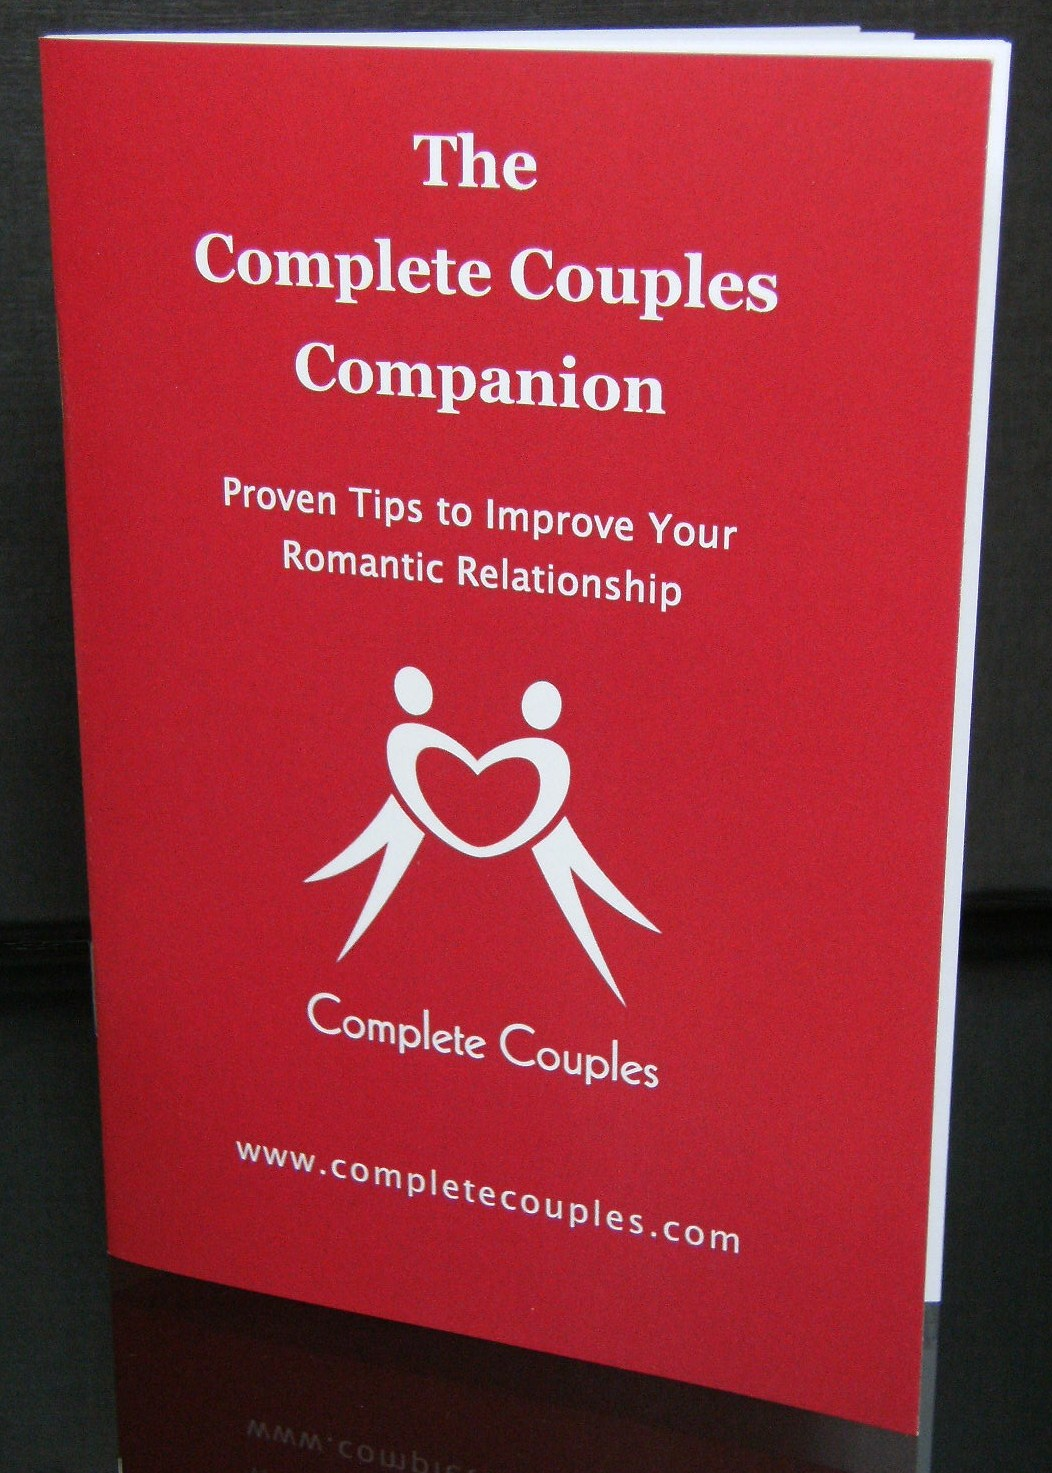 How to Complete a Relationship